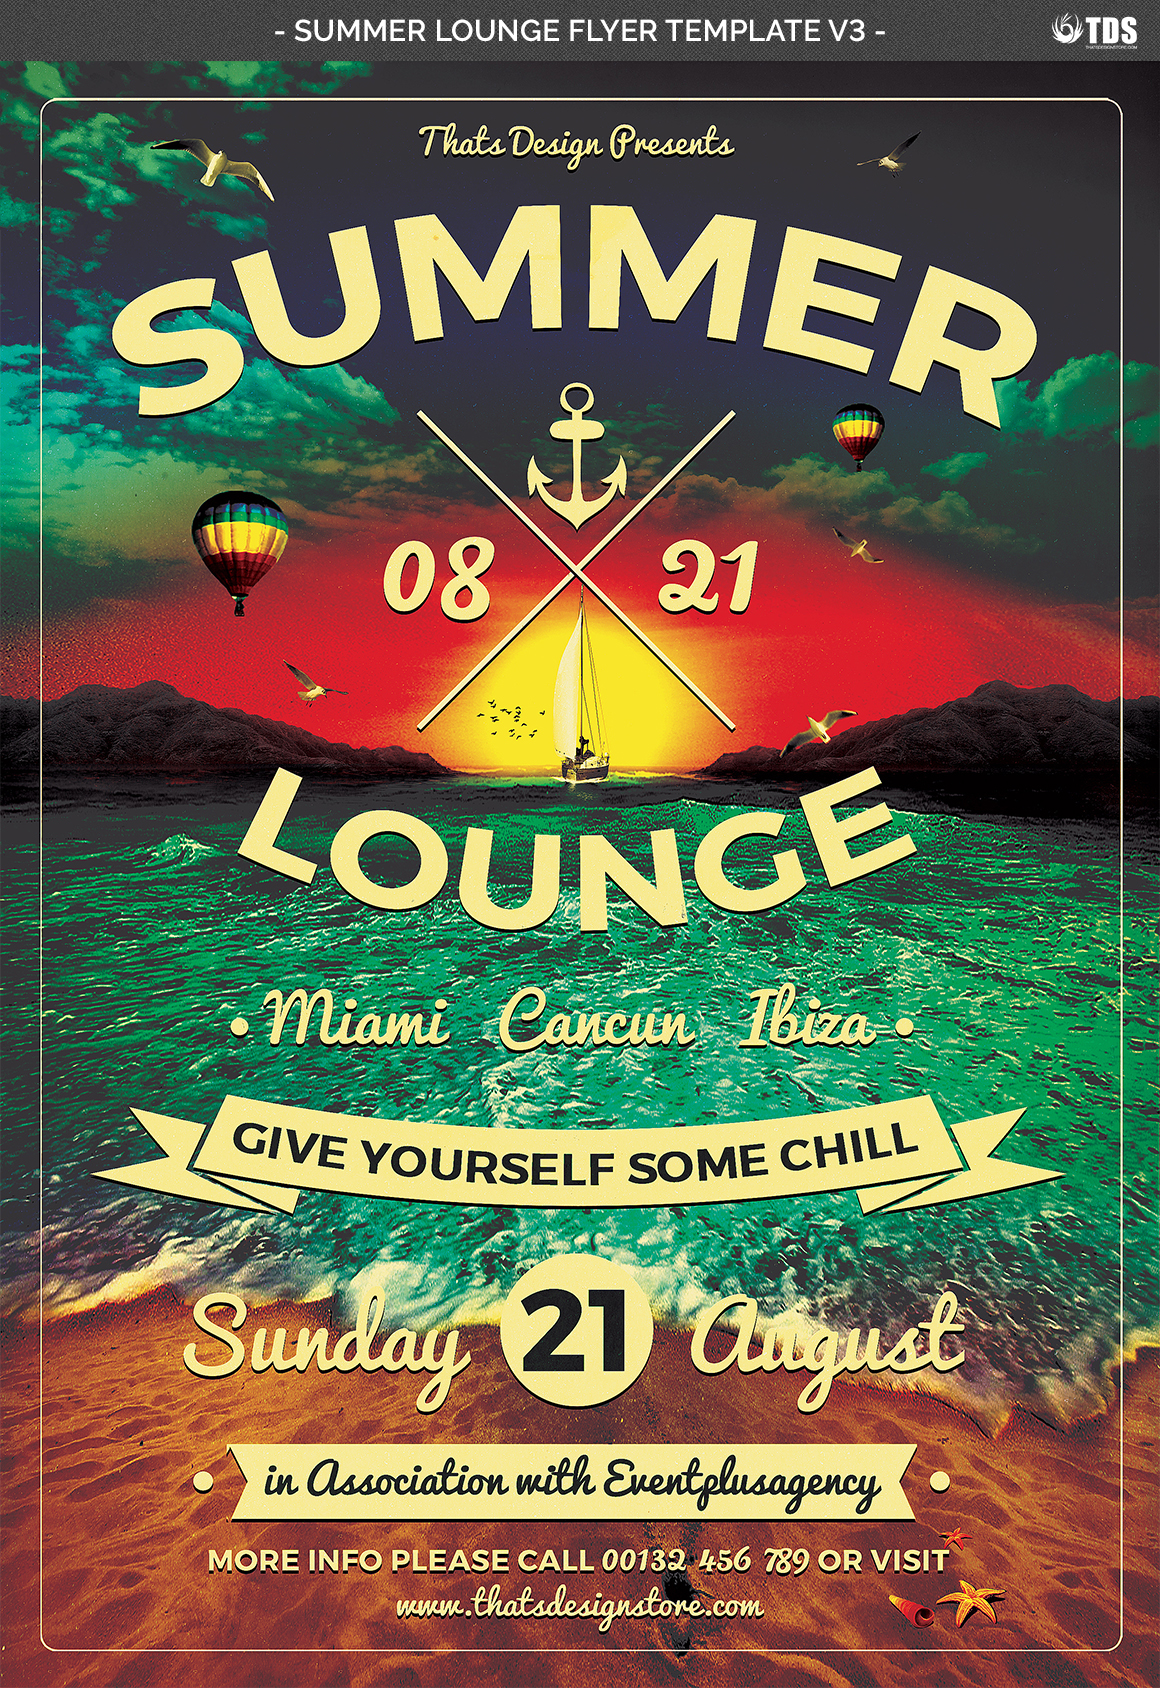 Summer Lounge Flyer Template V3 example image 4